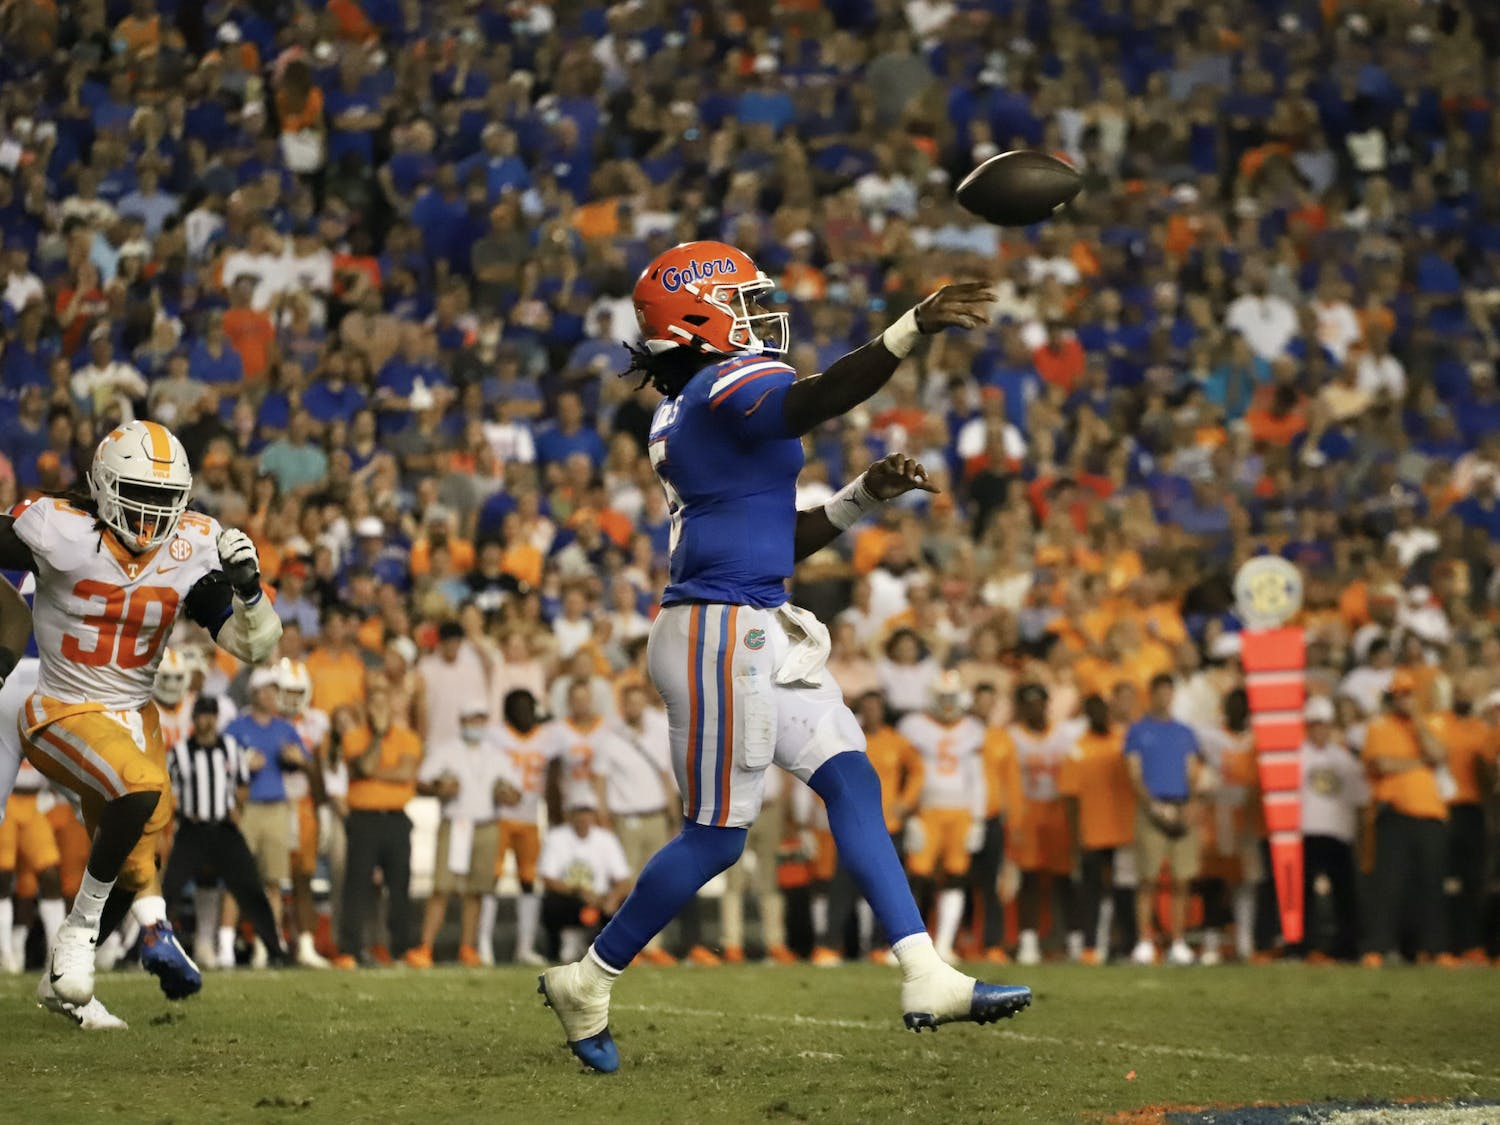 Florida quarterback Emory Jones winds up to throw against Tennessee during the Gators' 38-14 victory on Sept. 25, 2021.